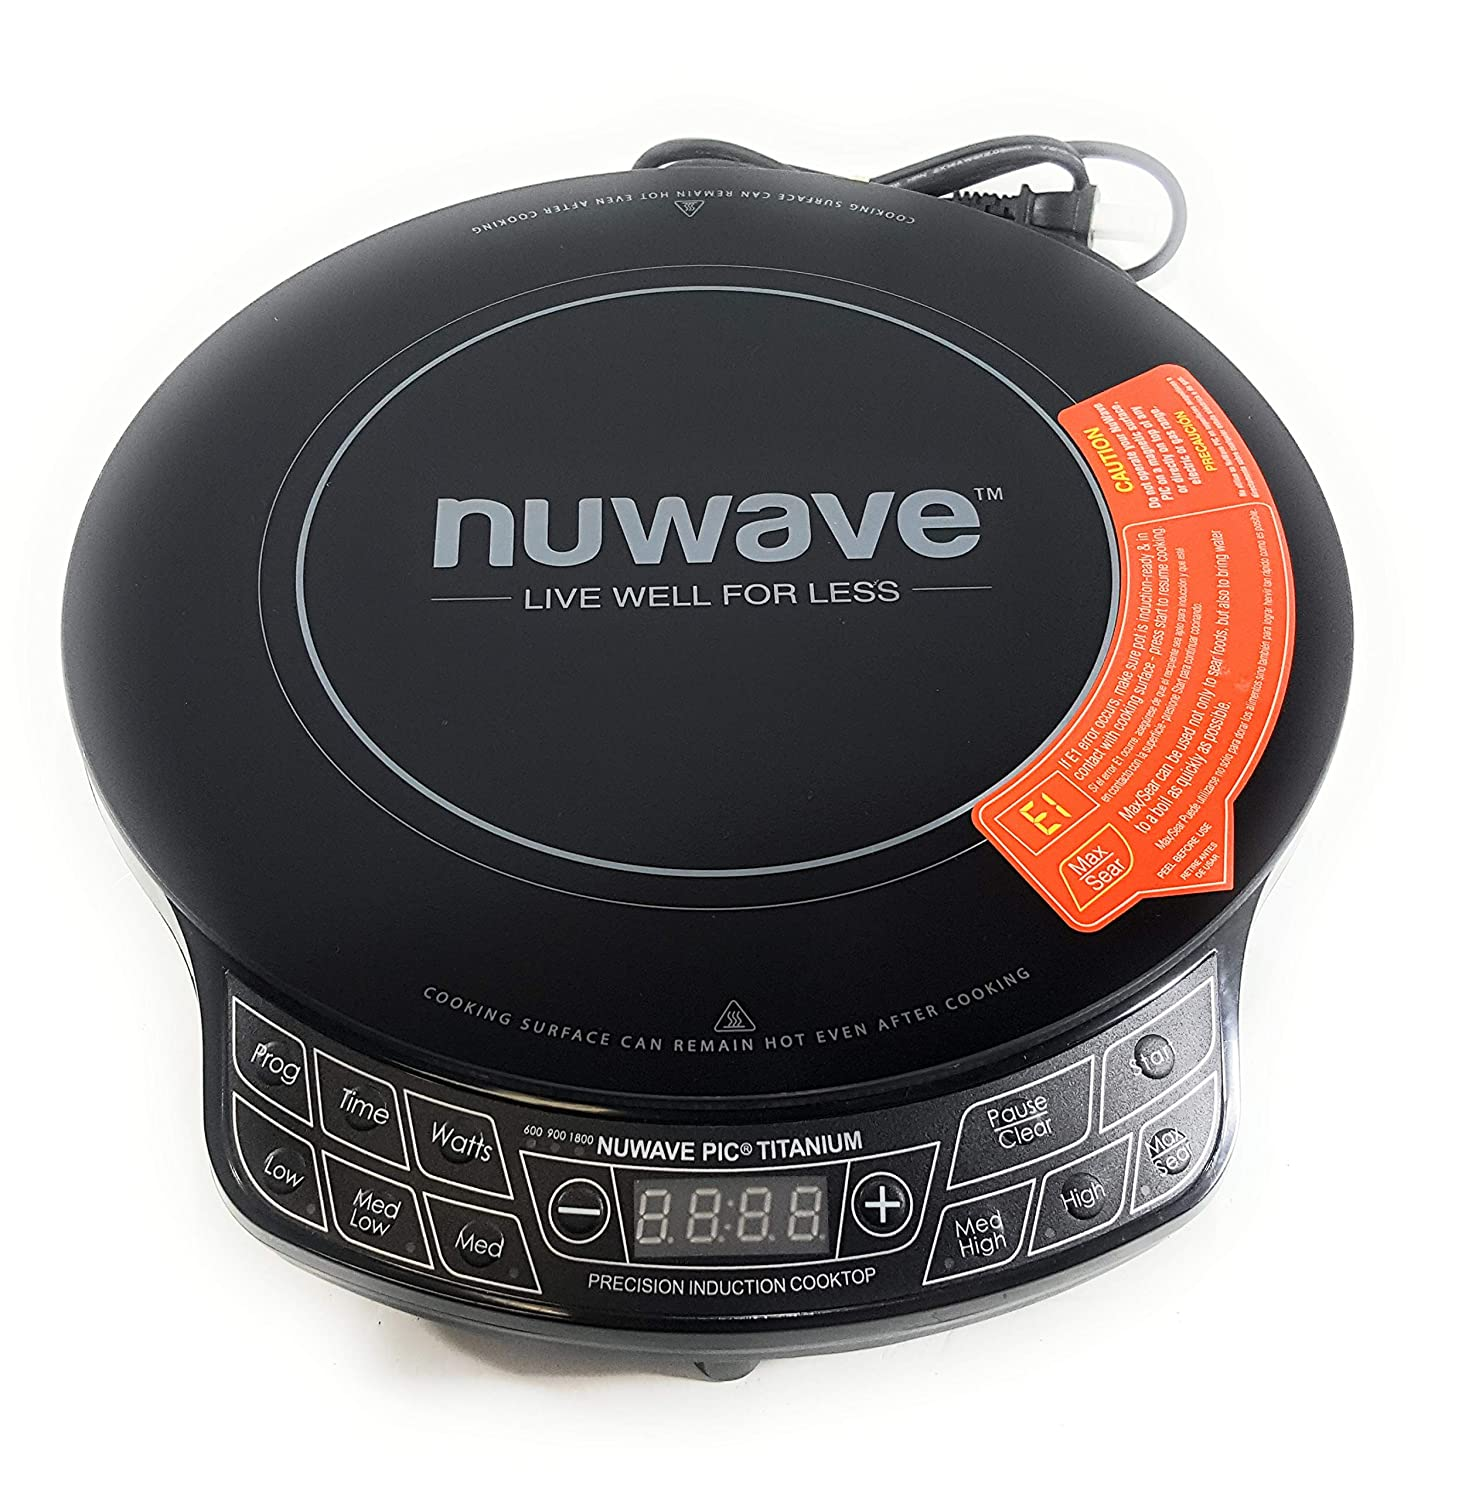 Top 10 Best Induction Cooktop Reviews in 2020 2